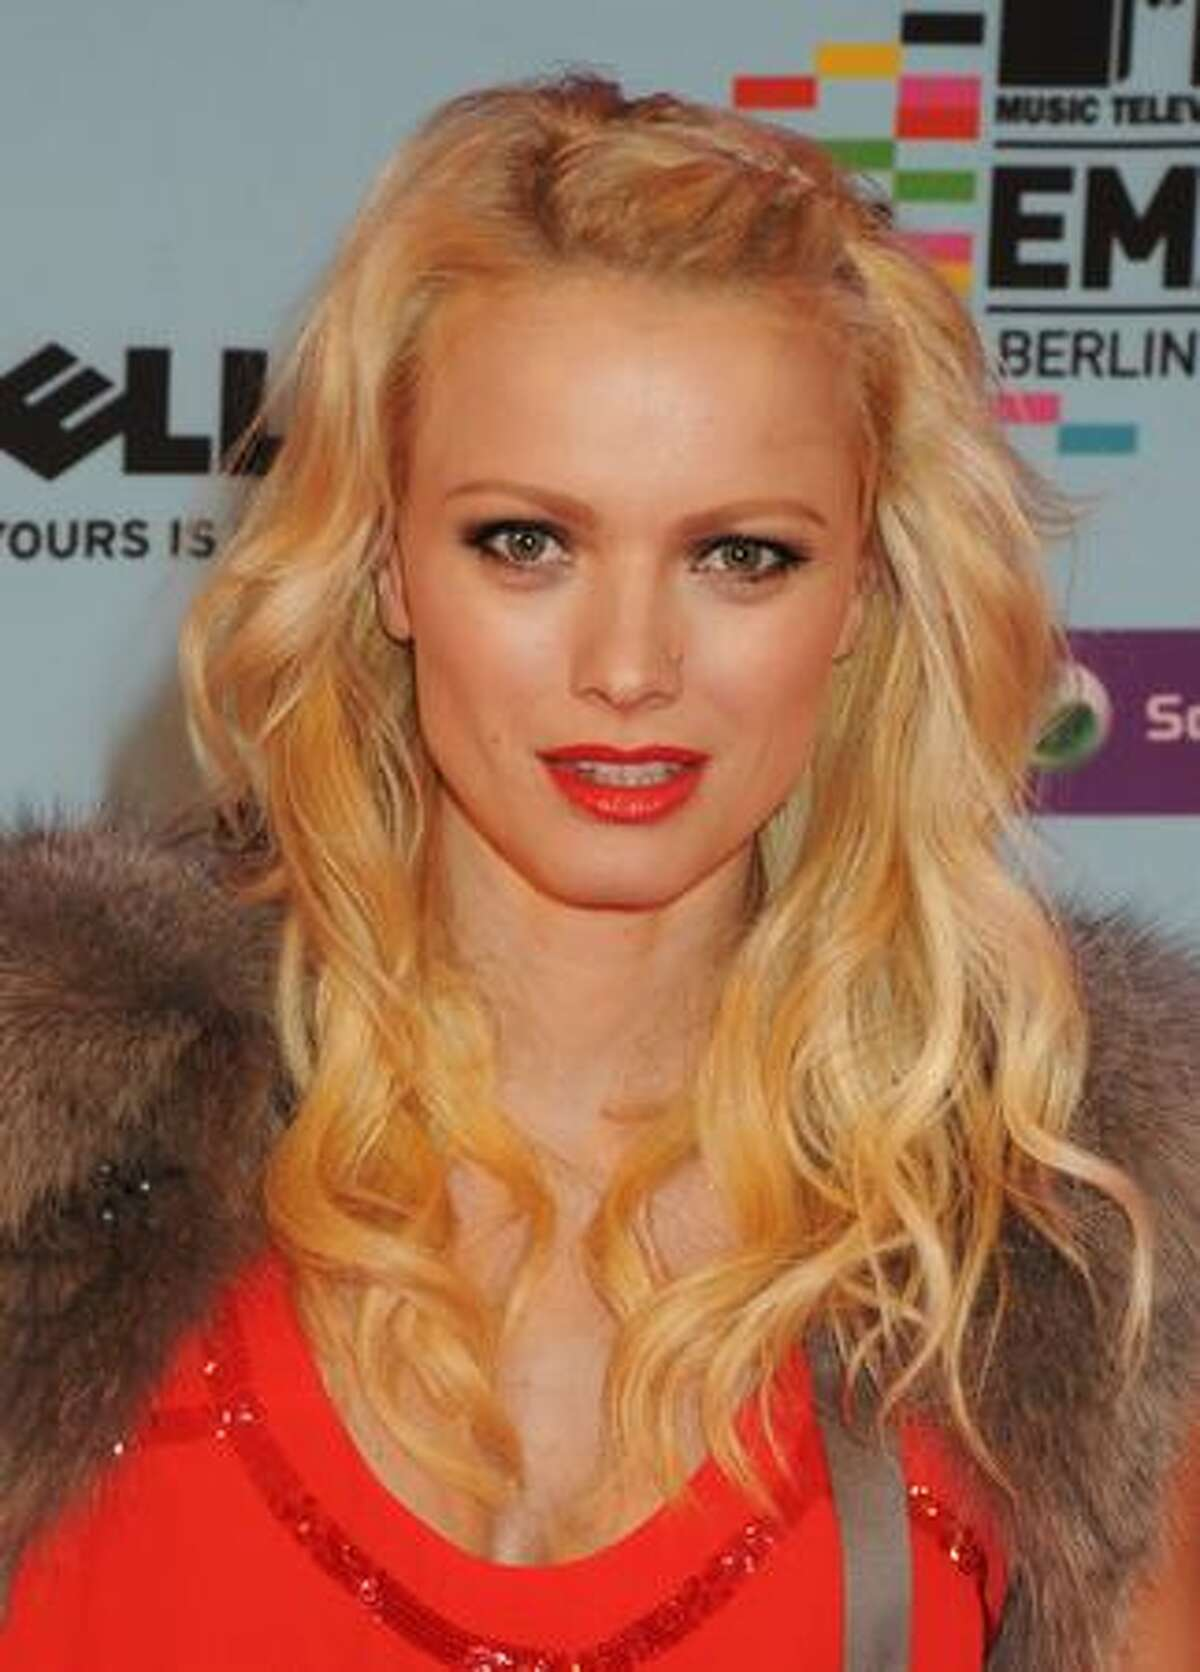 Model Franziska Knuppe arrives for the 2009 MTV Europe Music Awards held at the O2 Arena in Berlin, Germany.